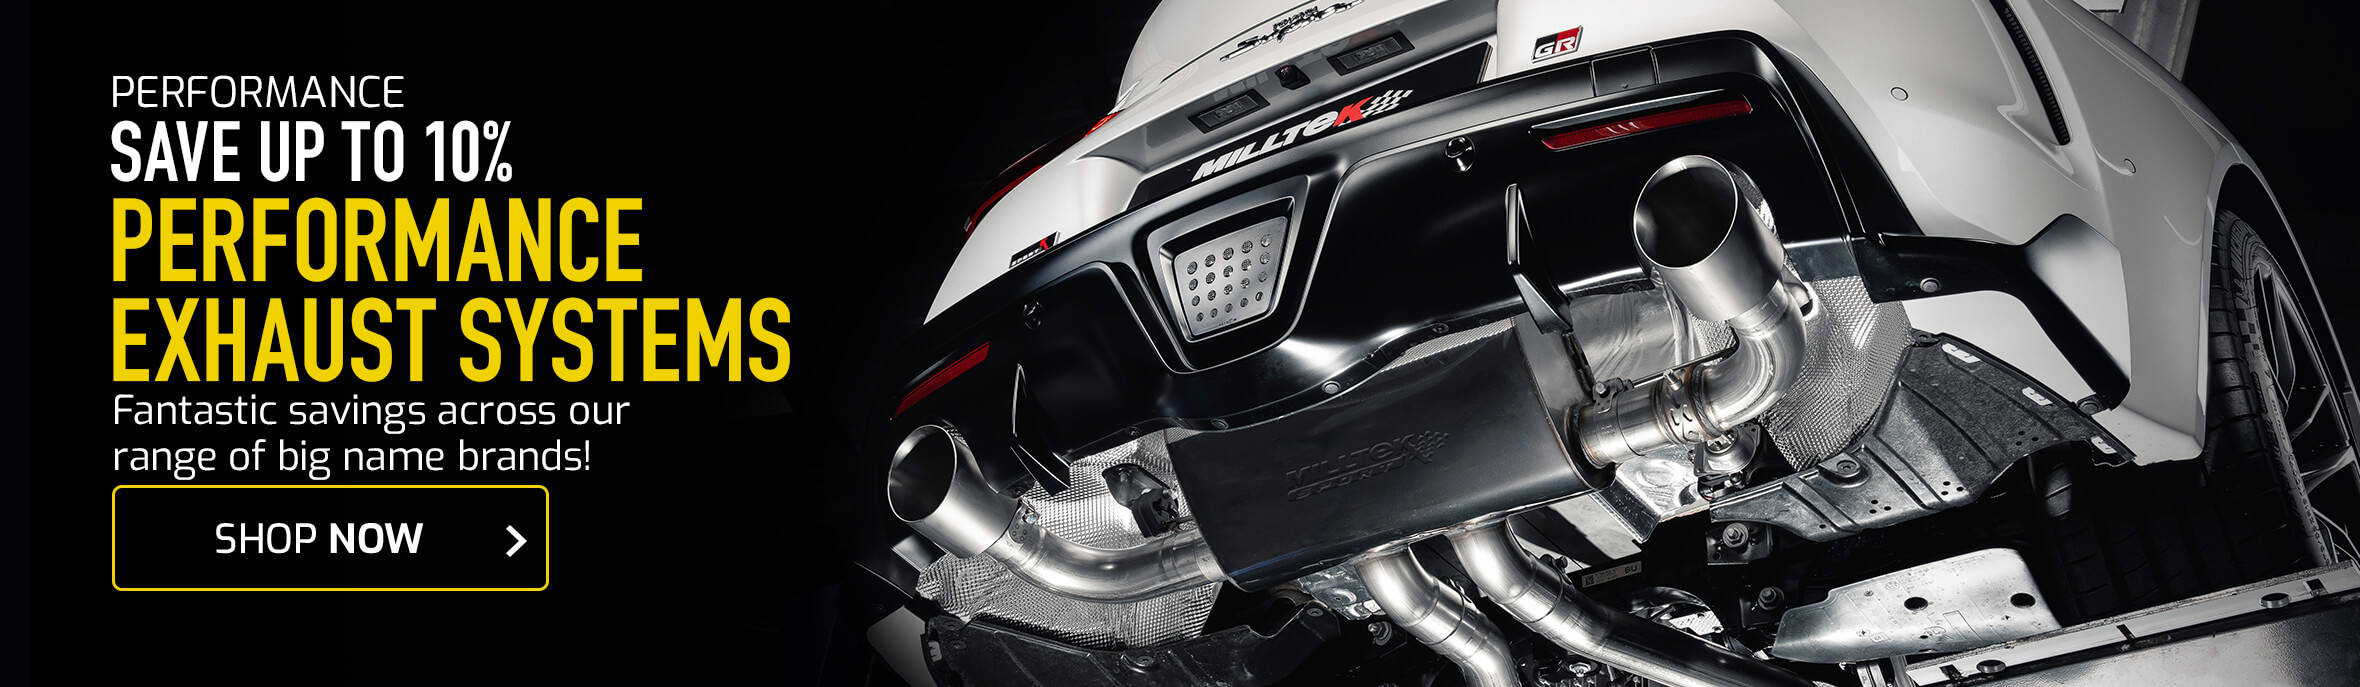 Save up to 10% on Performance Exhaust Systems